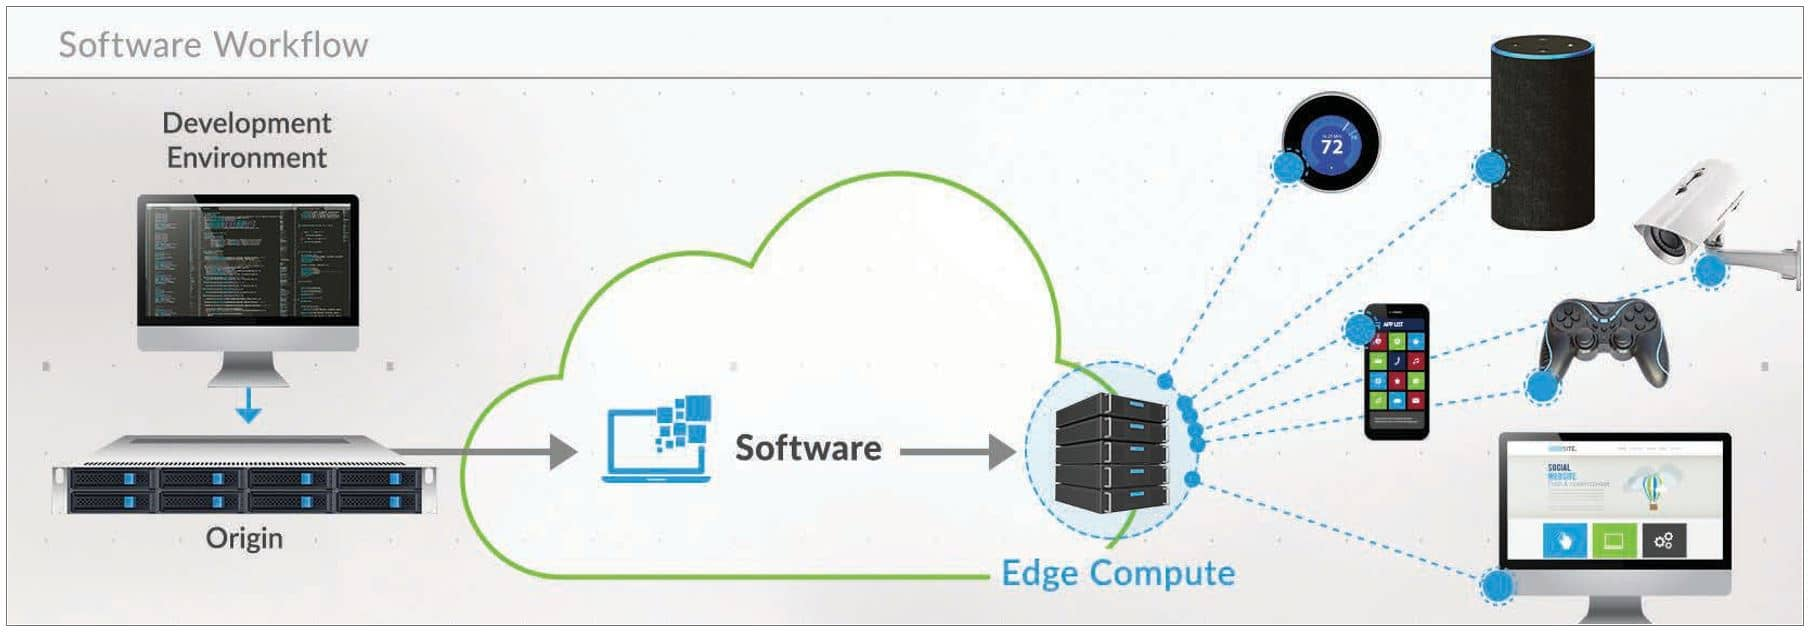 edge compute software limelight networks